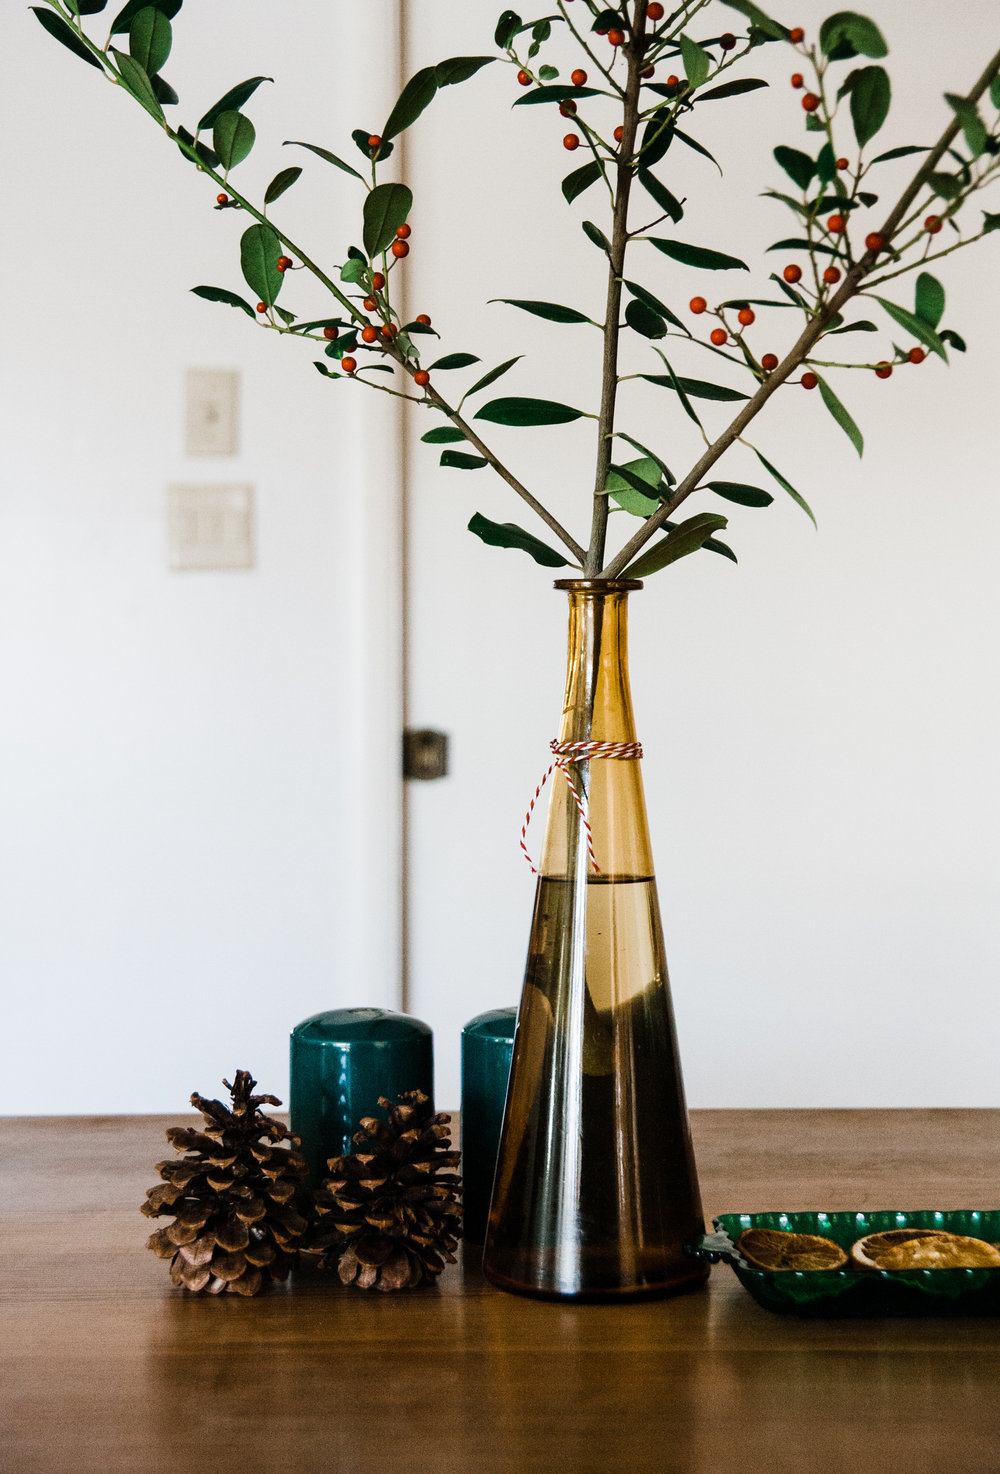 Can it get any easier than clipping holly bushes to put in a vase on your table?